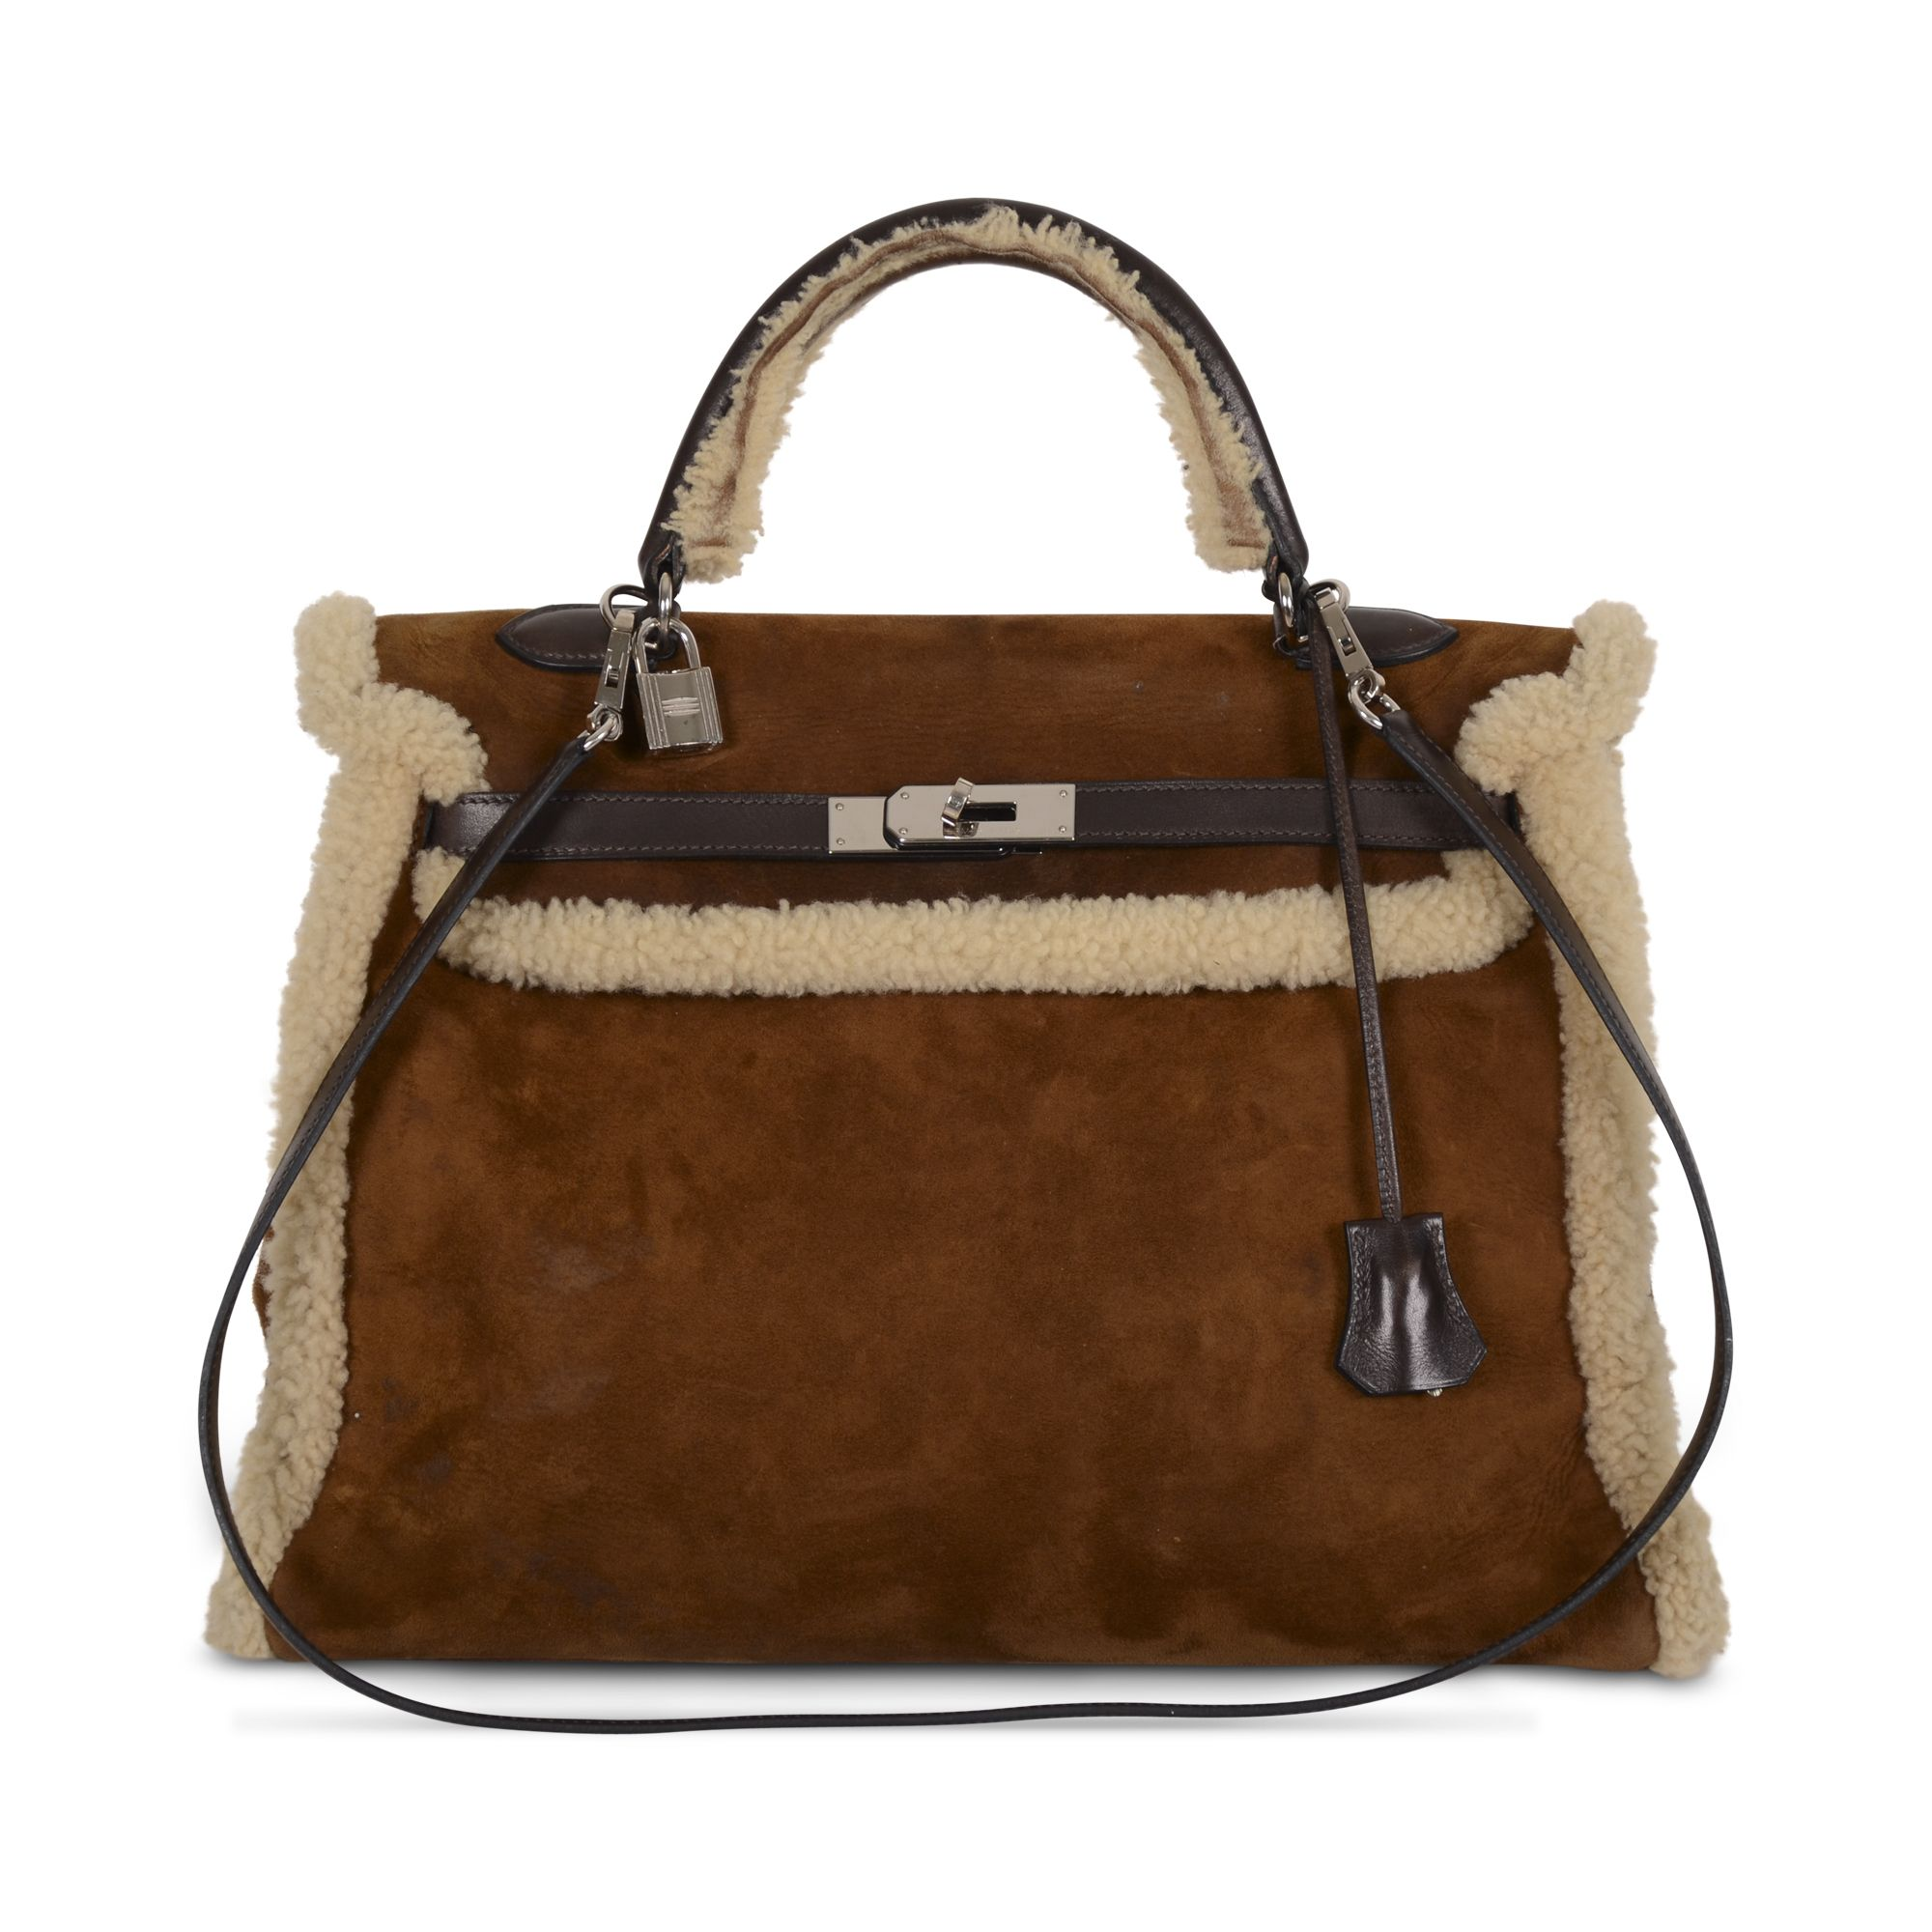 57ce565a8708 Hermes Kelly 35 Plush in Teddy shearling RARE Bag